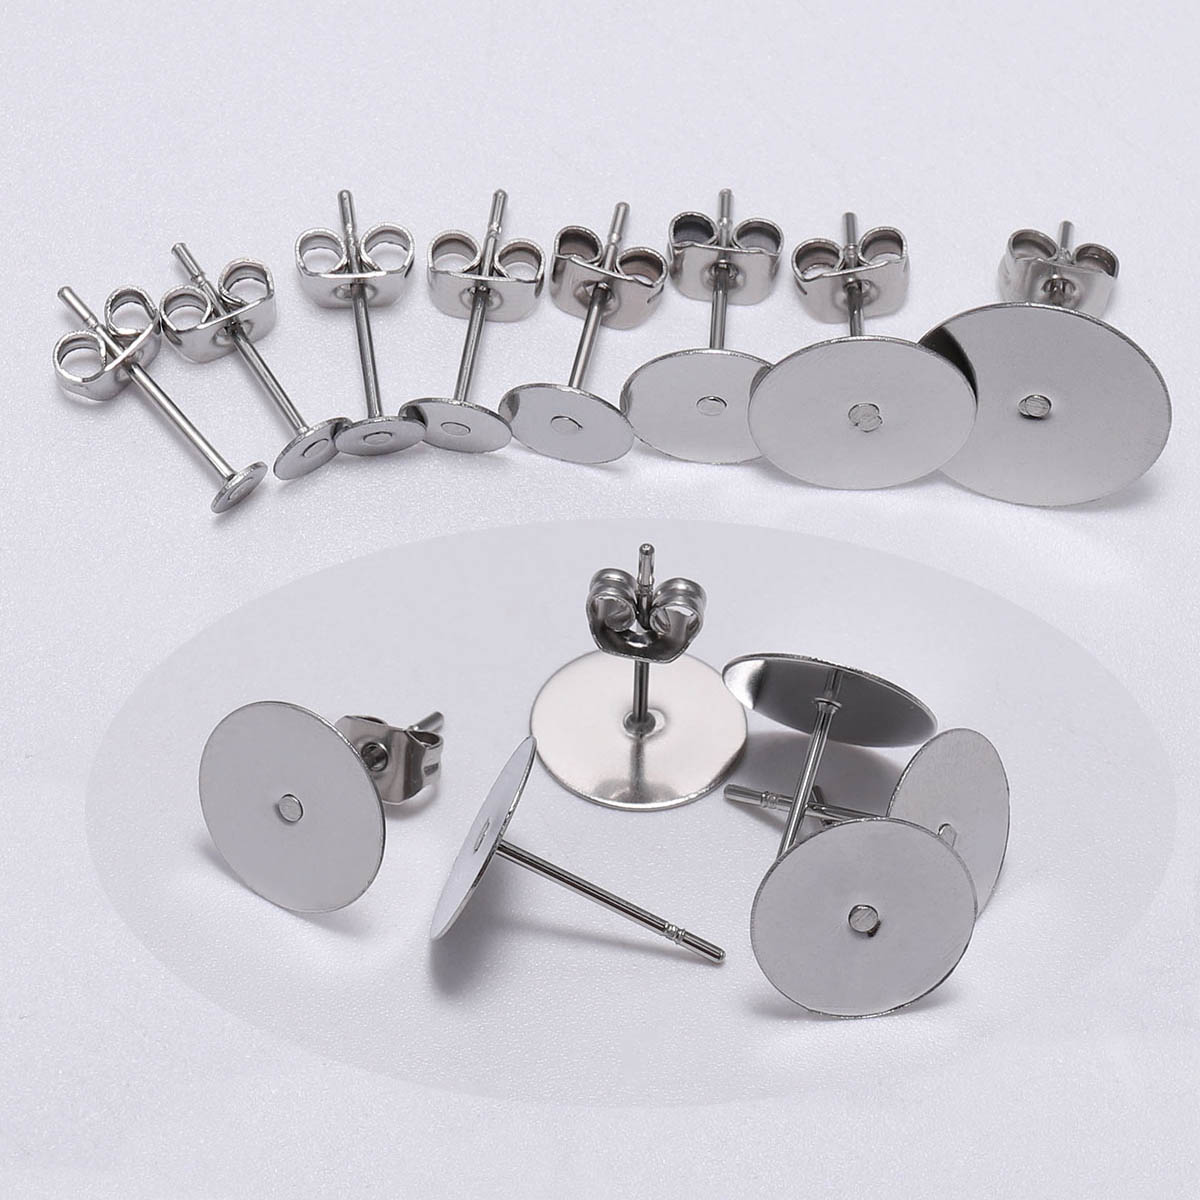 100pcs/lot Stainless Steel Blank Post Earring Stud Base Pins With Earring Plug Supplies For Jewelry Making DIY Earrings Findings